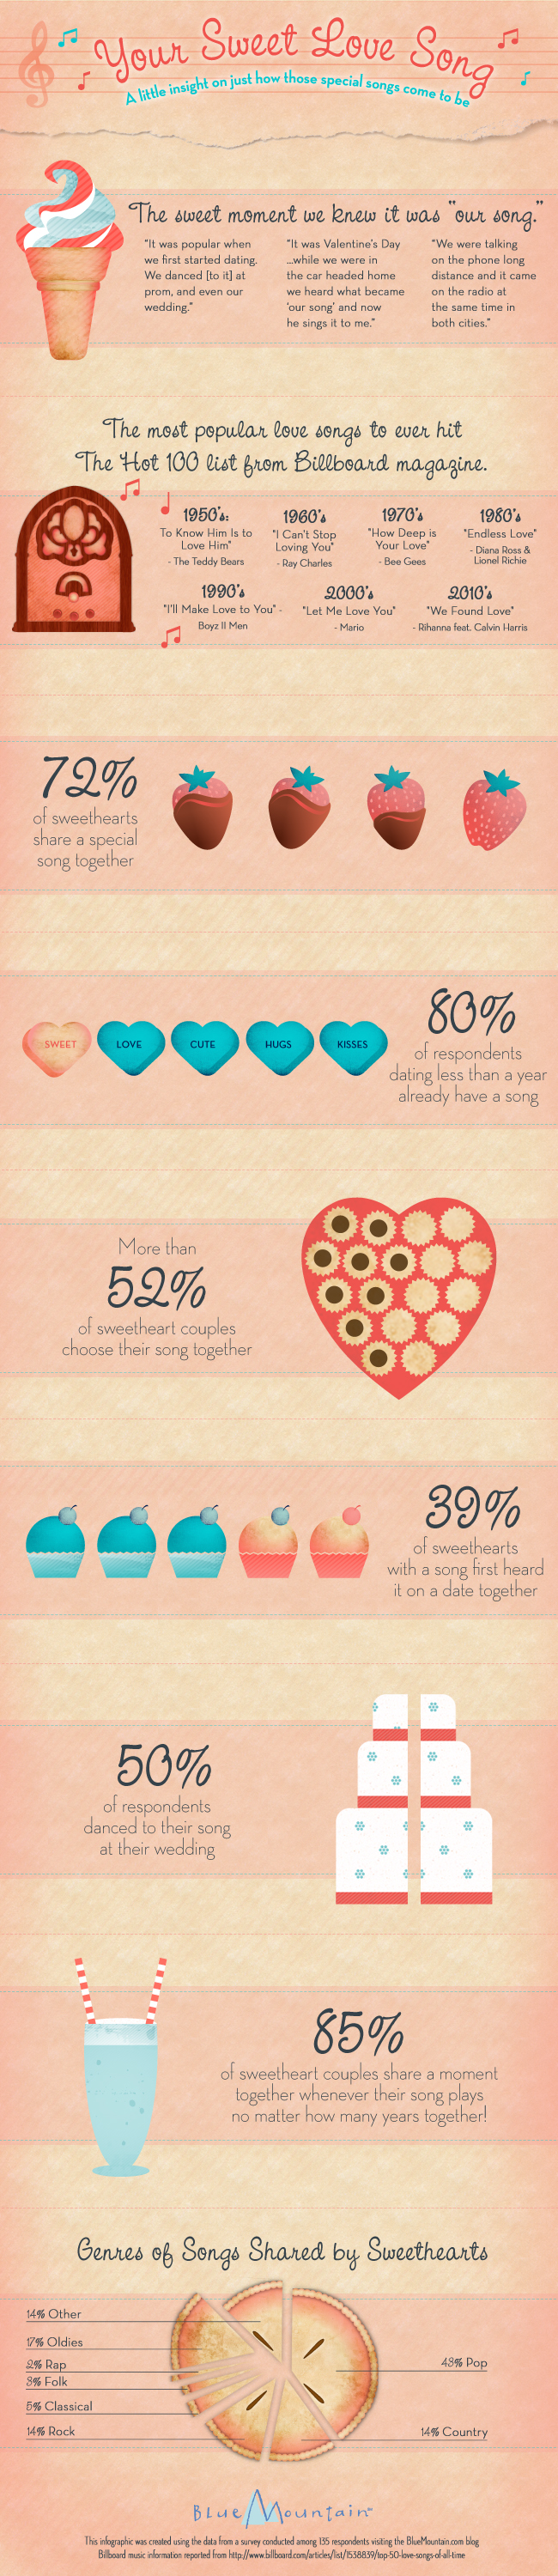 A very special Valentine's Day infographic from BlueMountain.com